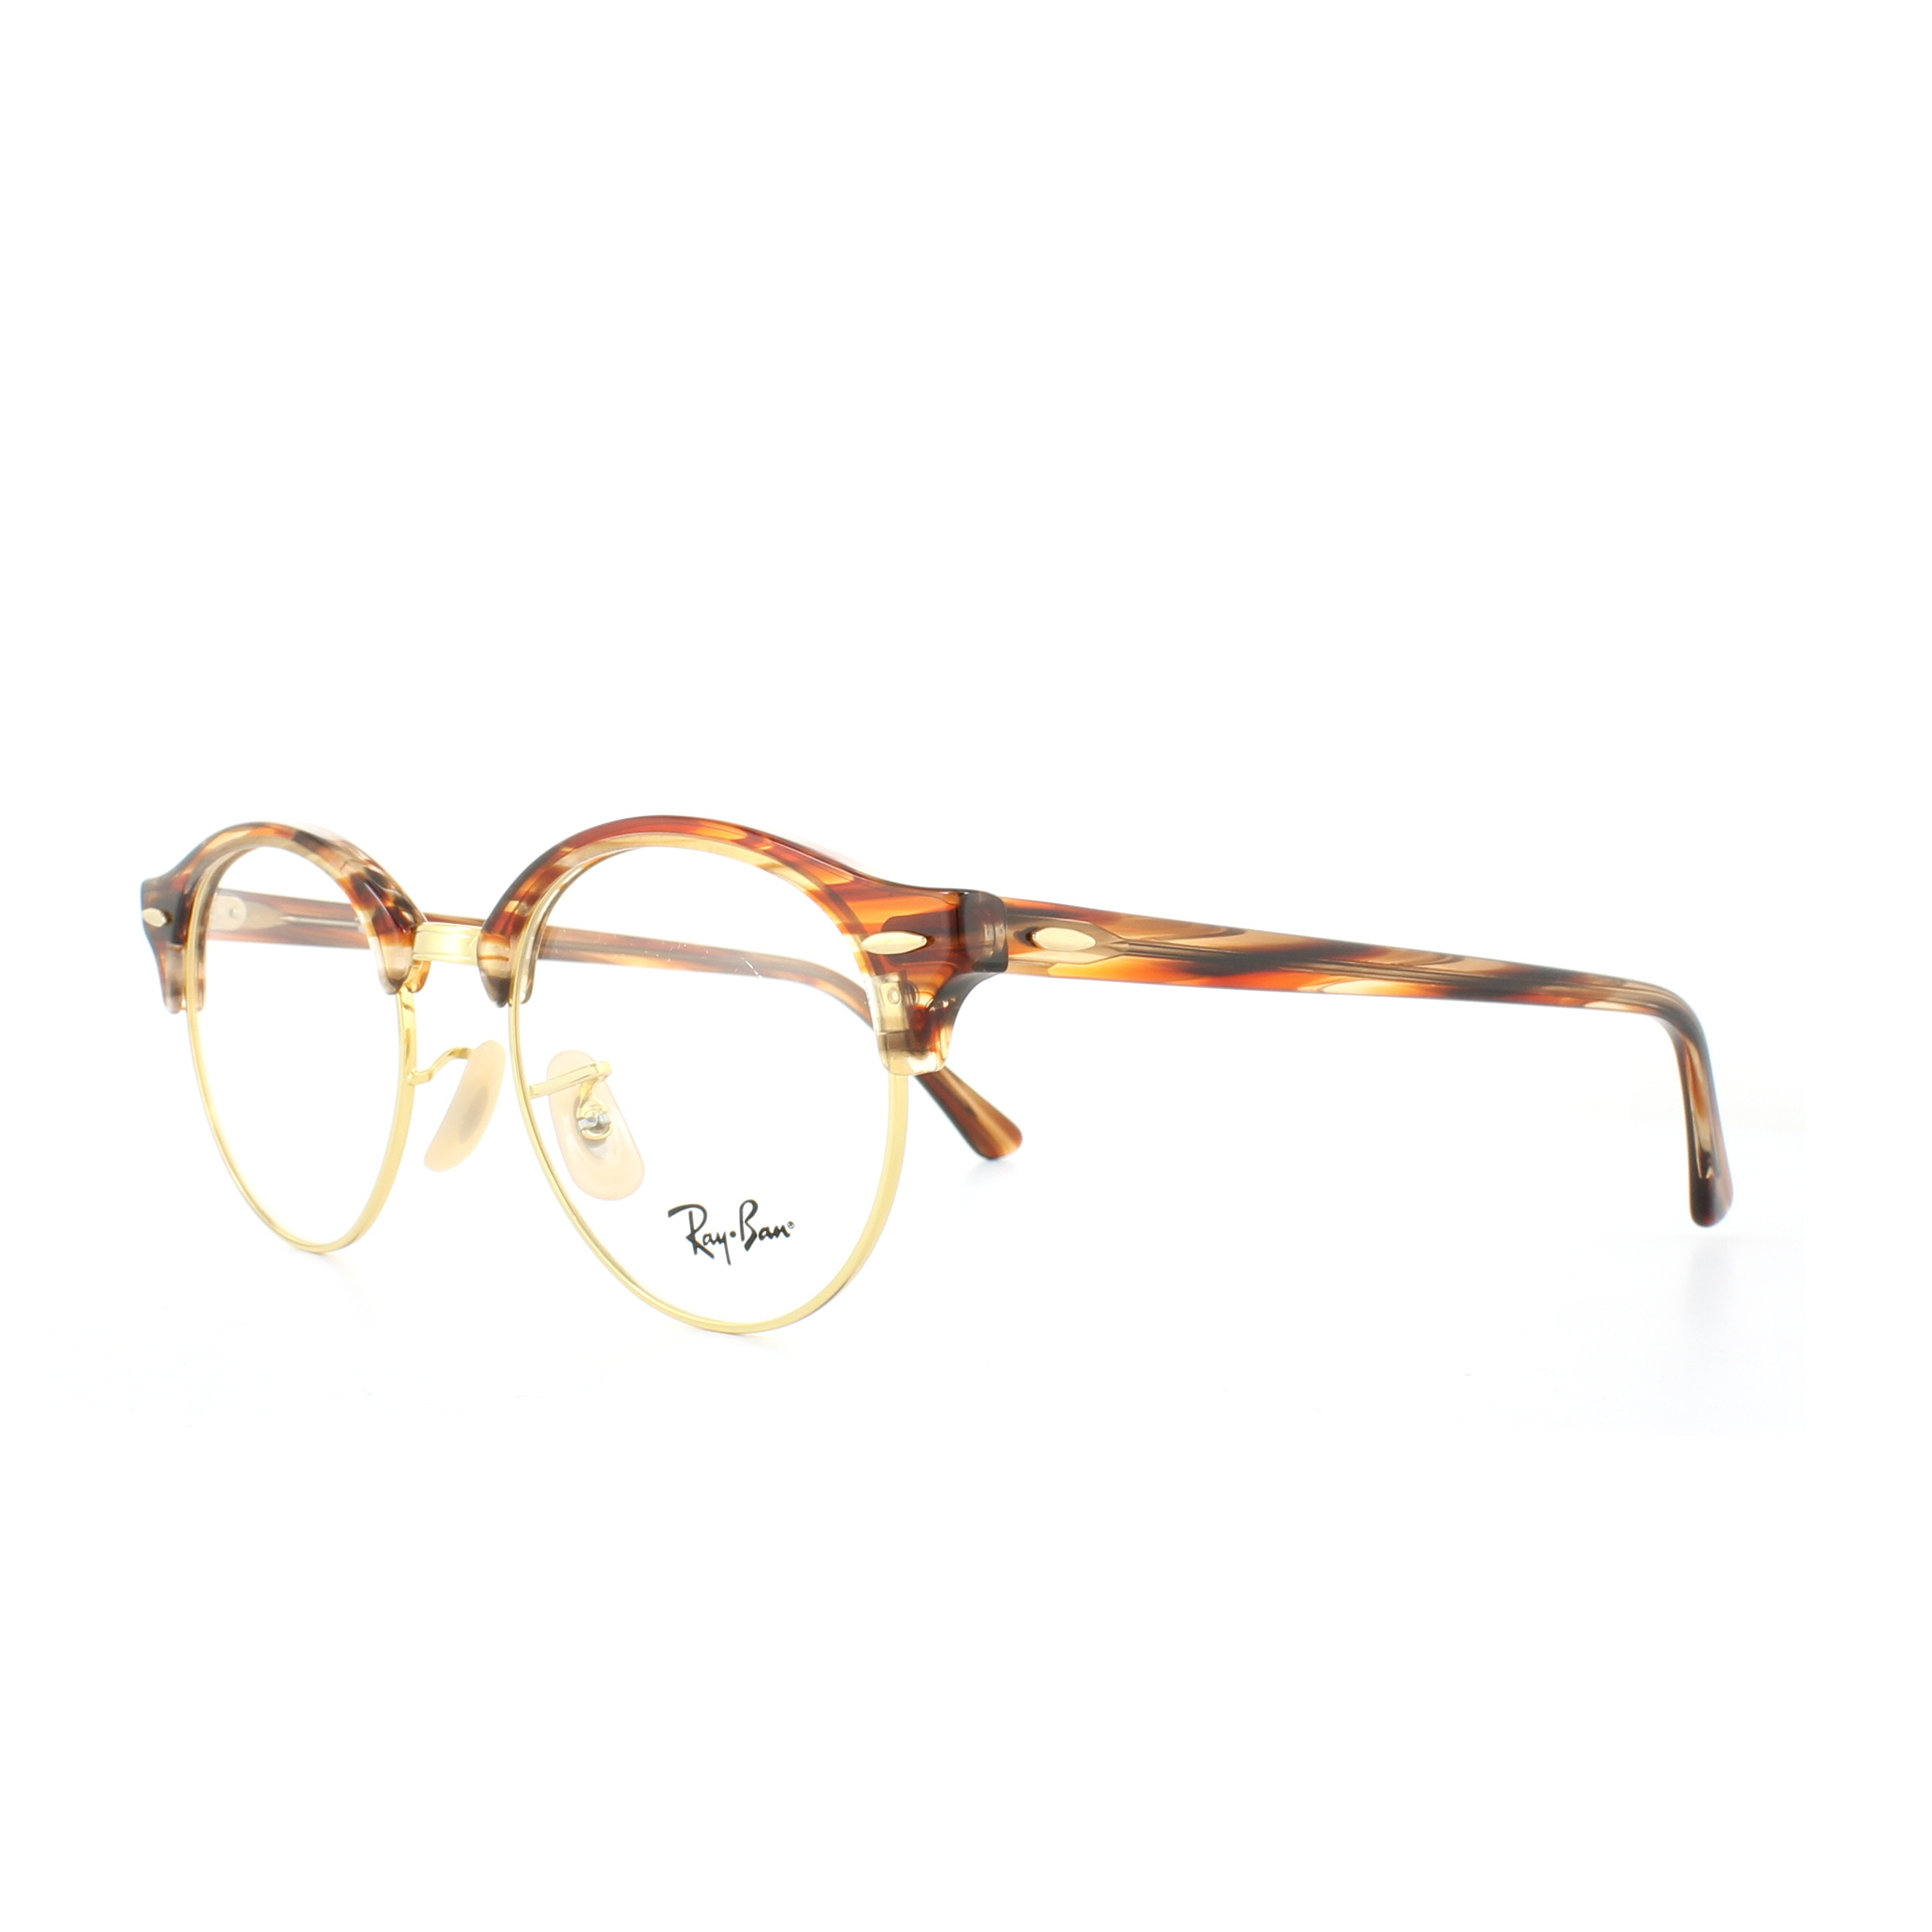 98b8b208e77 Sentinel Ray-Ban Glasses Frames 4246V Clubround 5751 Brown Beige Striped  49mm Mens Womens